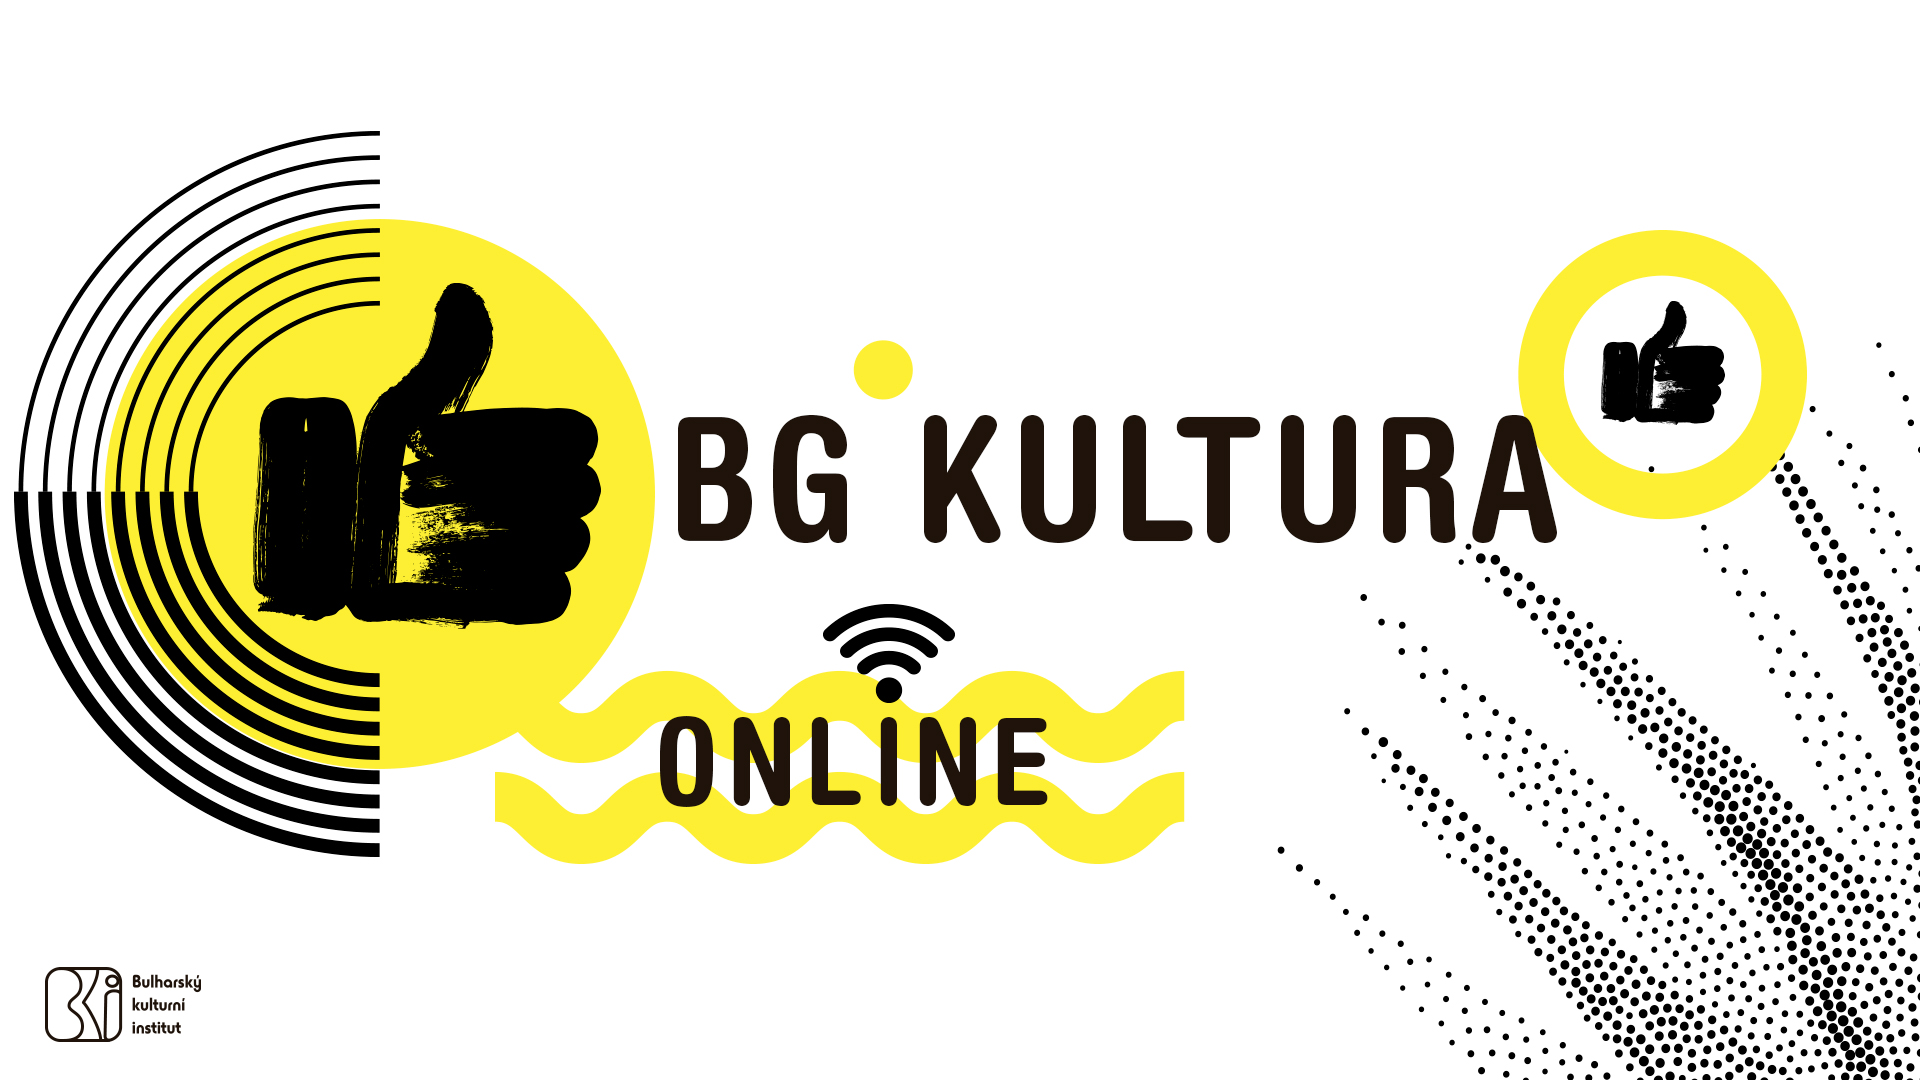 BKI_BG_KULTURA_Facebook_event_cover